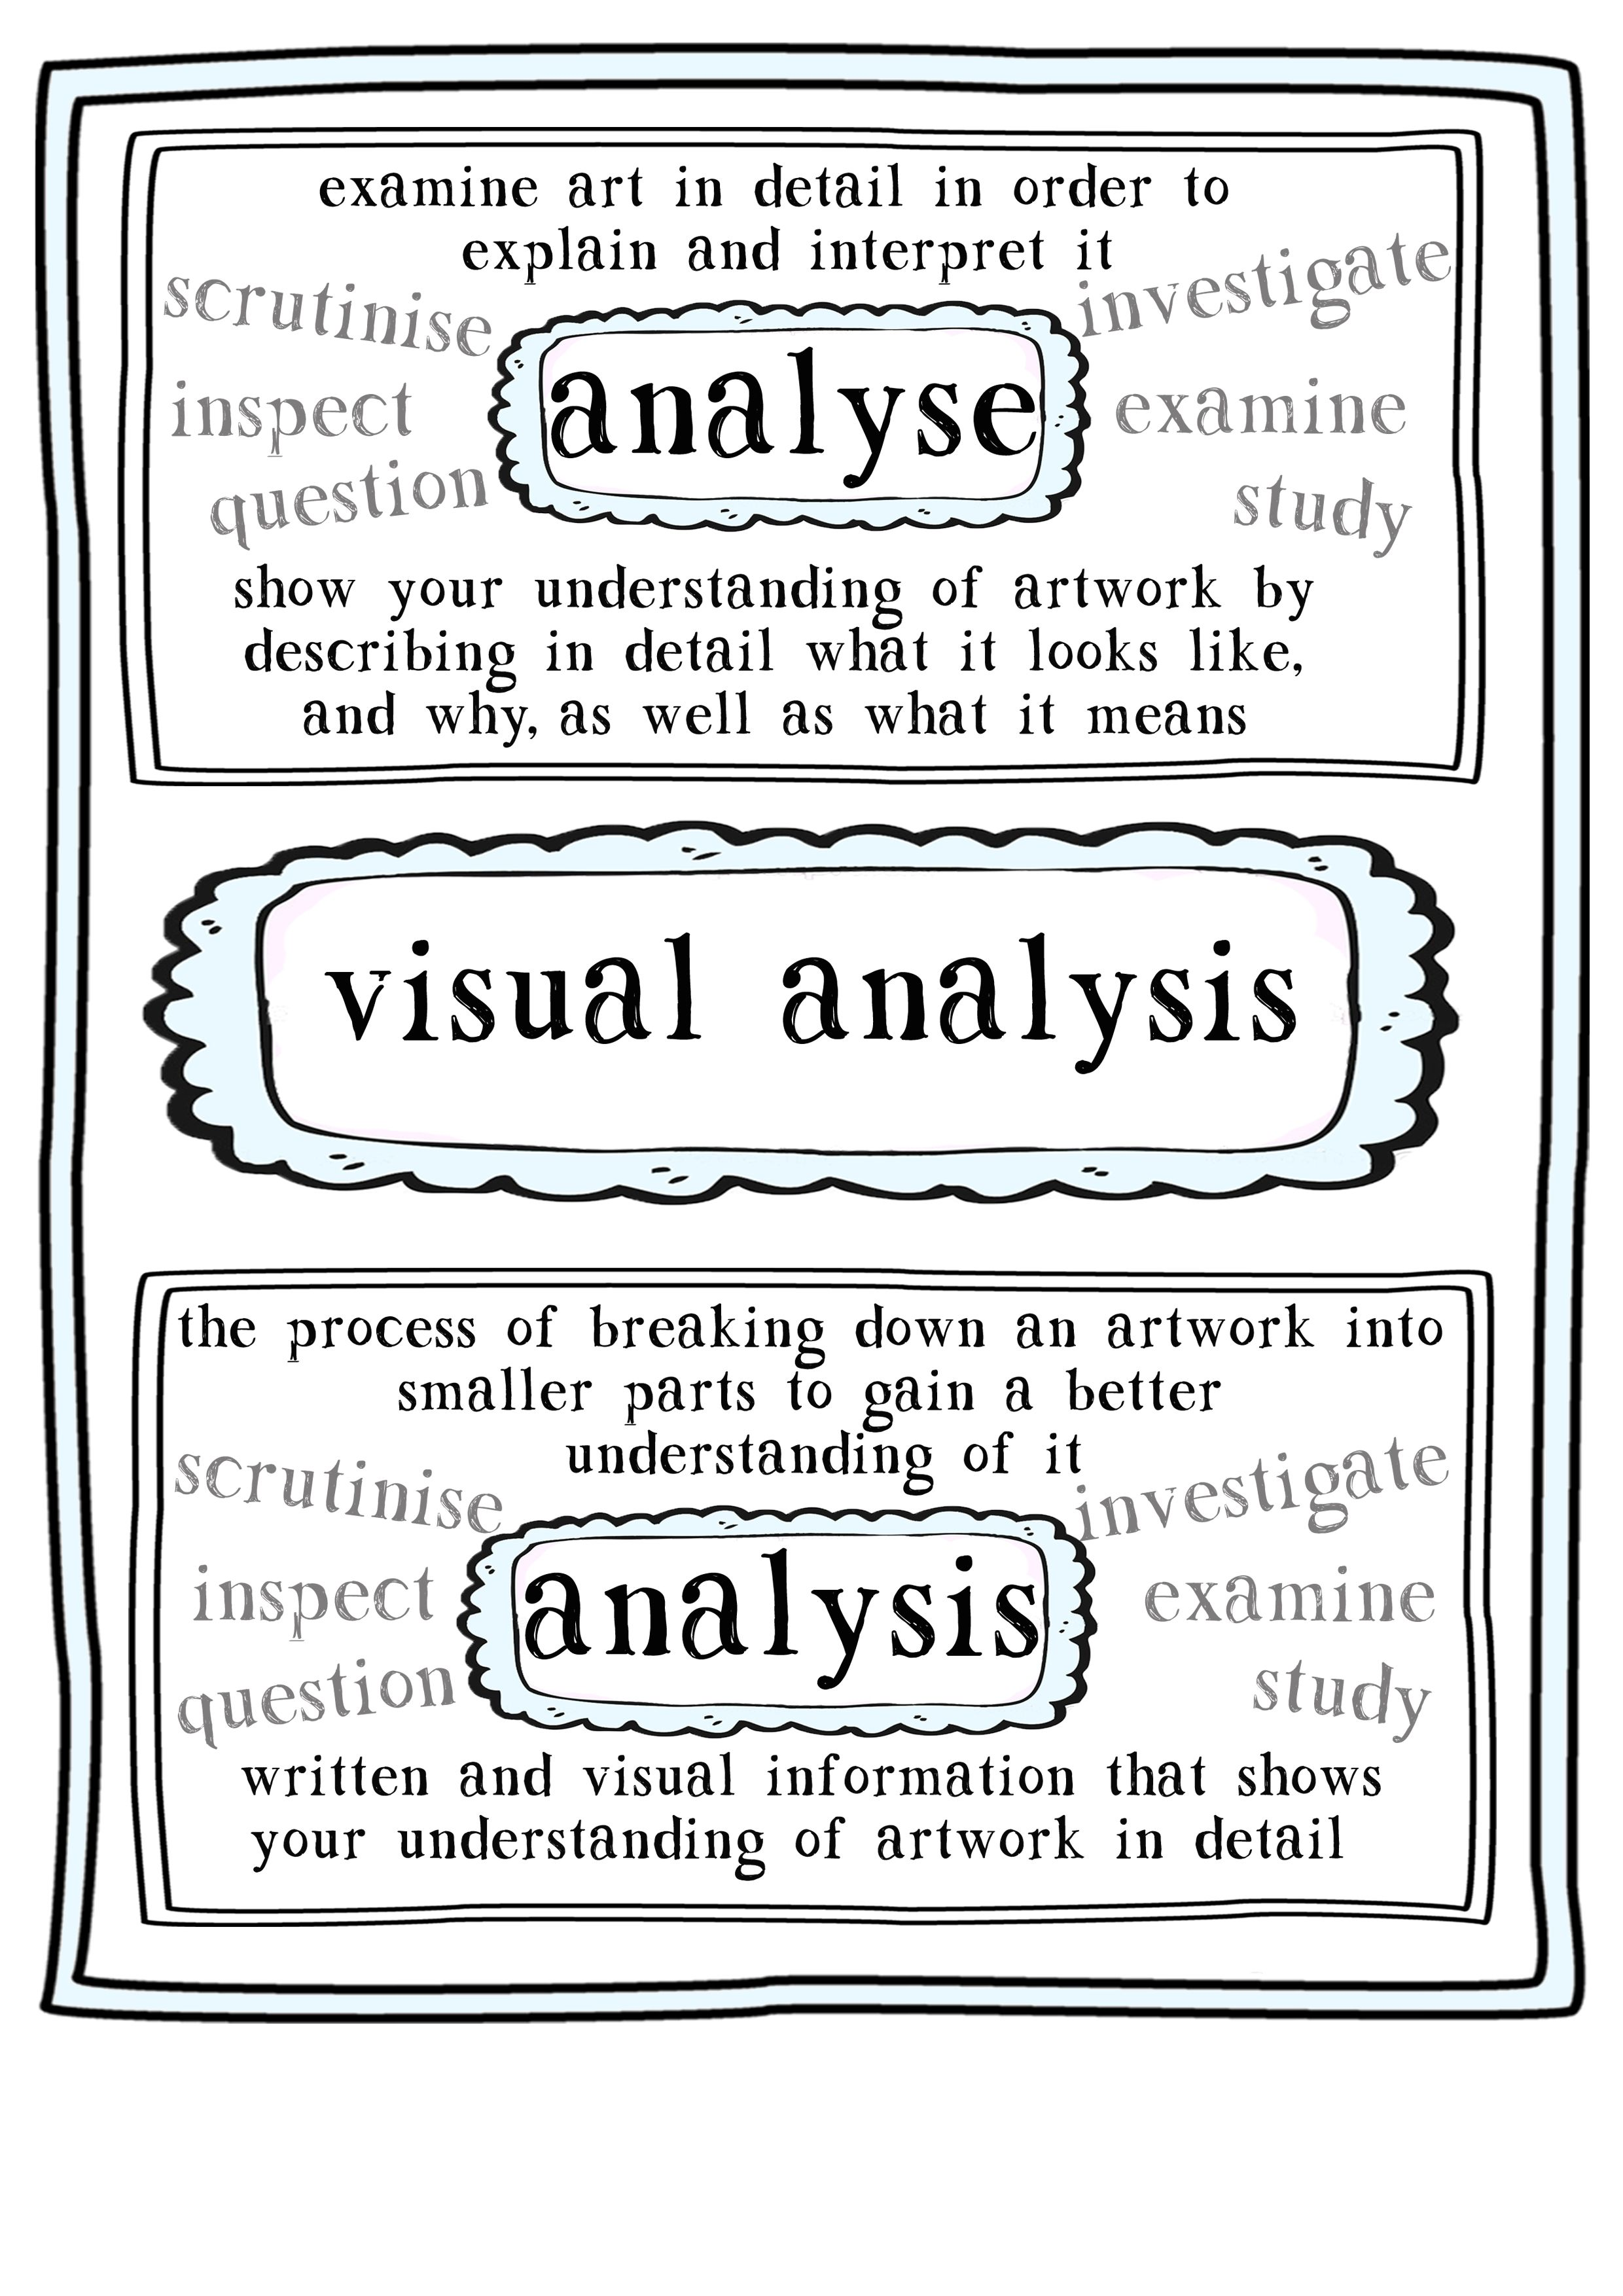 Visualysis Poster Remind Students What They Are